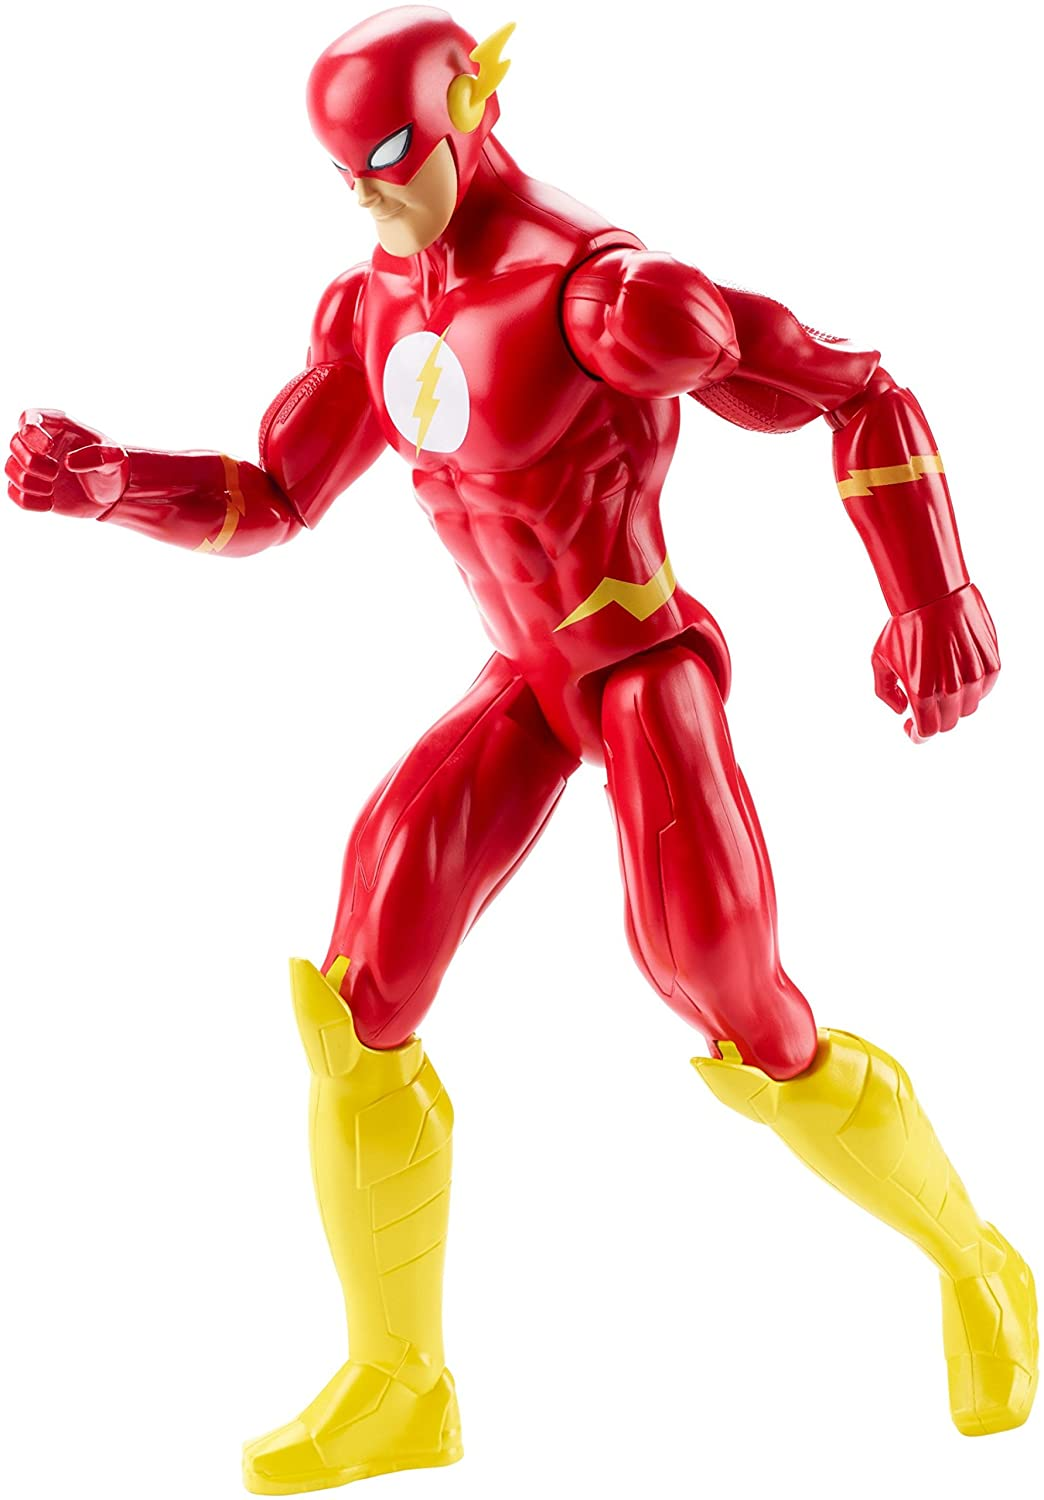 Mattel - DWM51 - DC Justice League - Flash Figurine 12